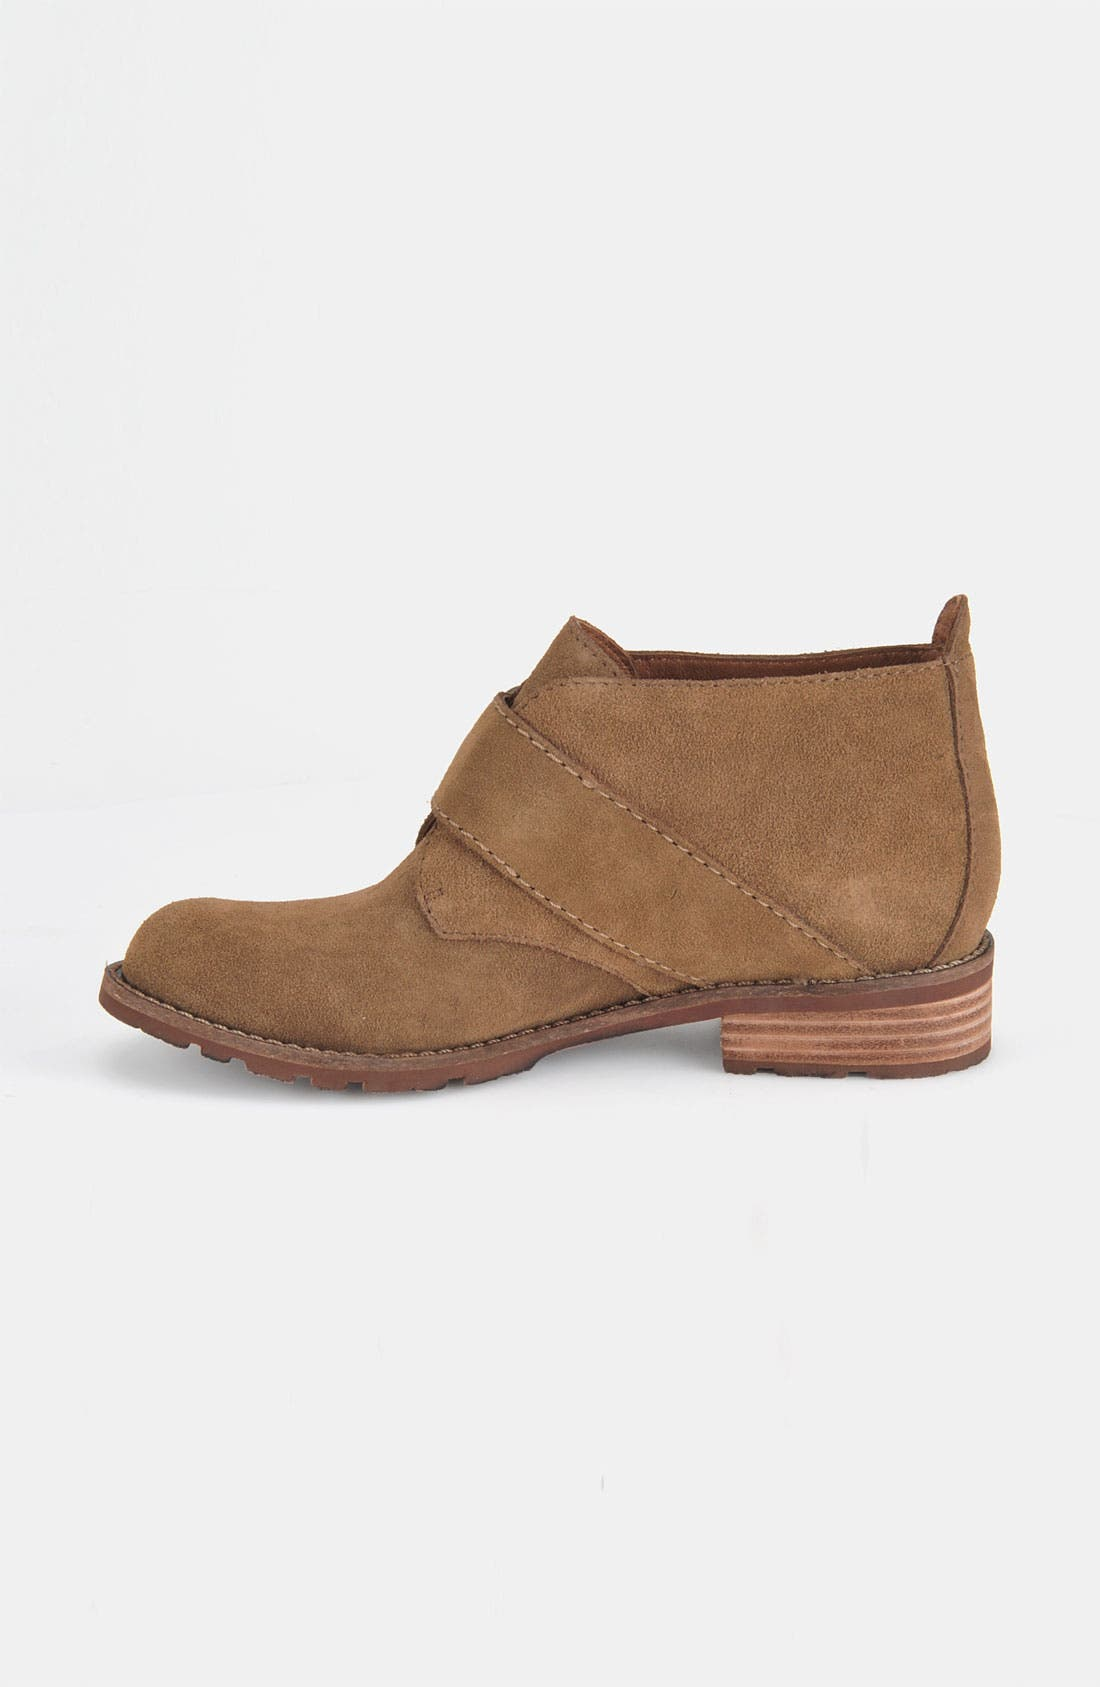 'Boone' Bootie,                             Alternate thumbnail 2, color,                             Earth Suede